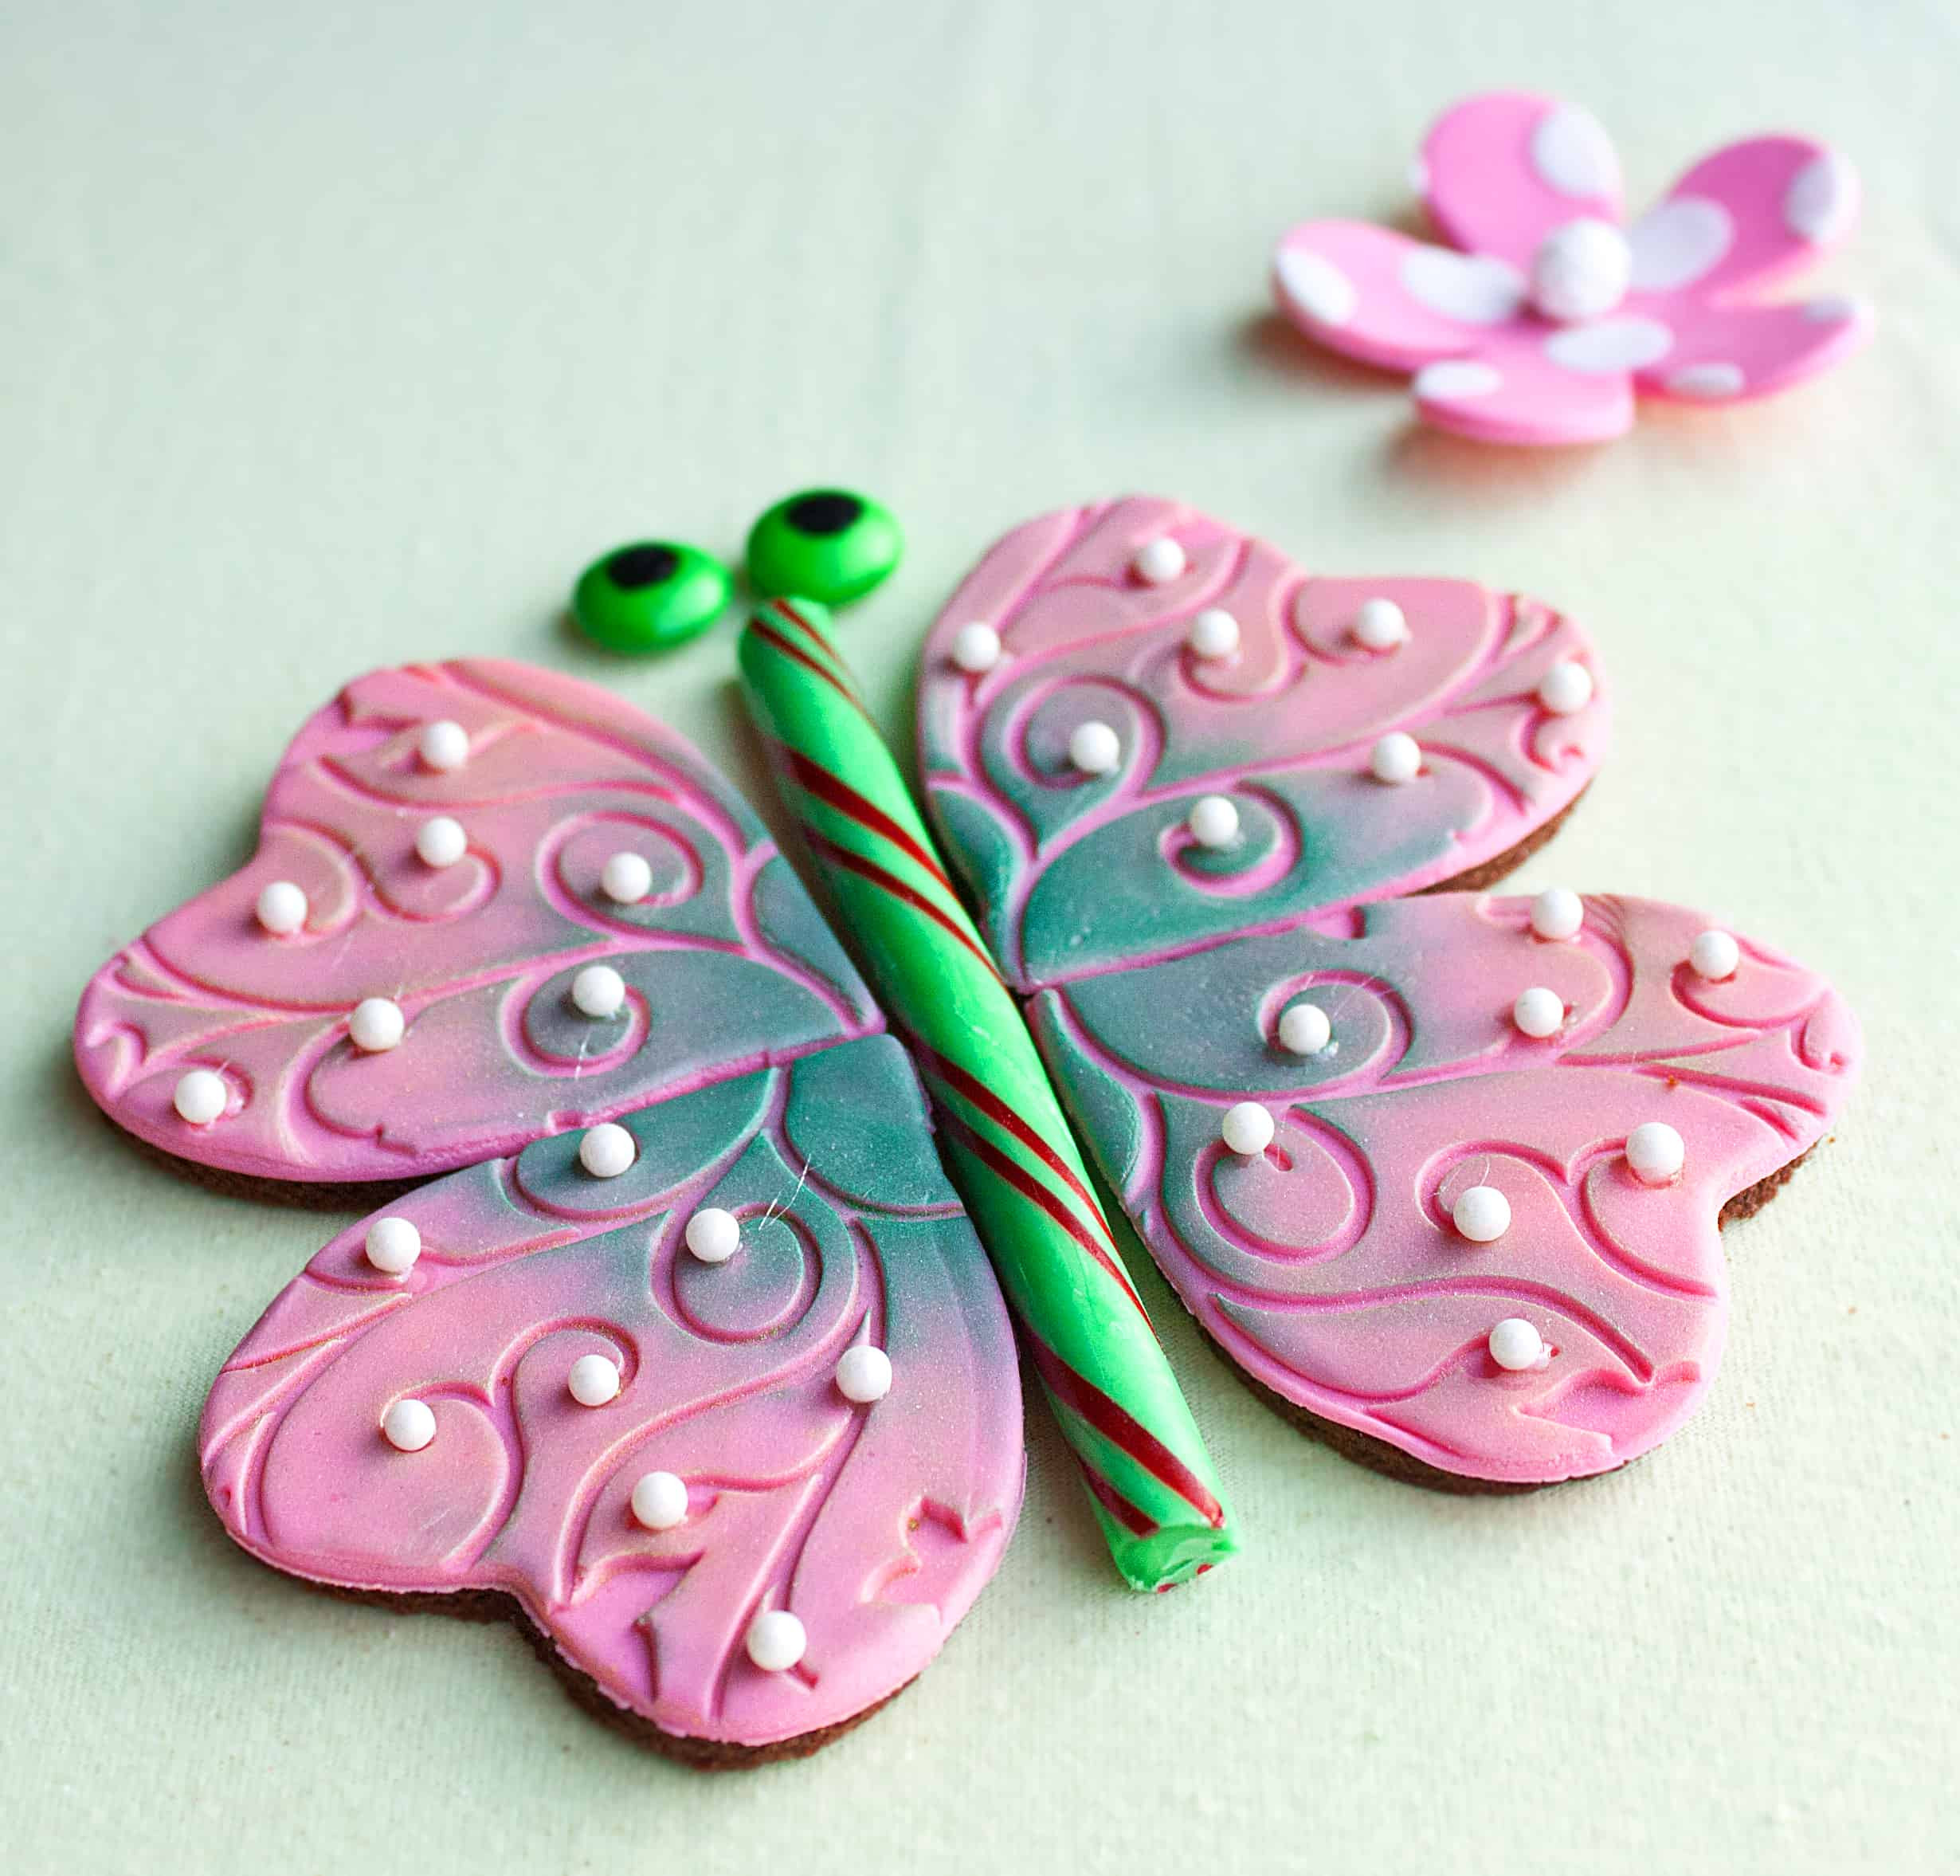 edible butterfly puzzle decoration